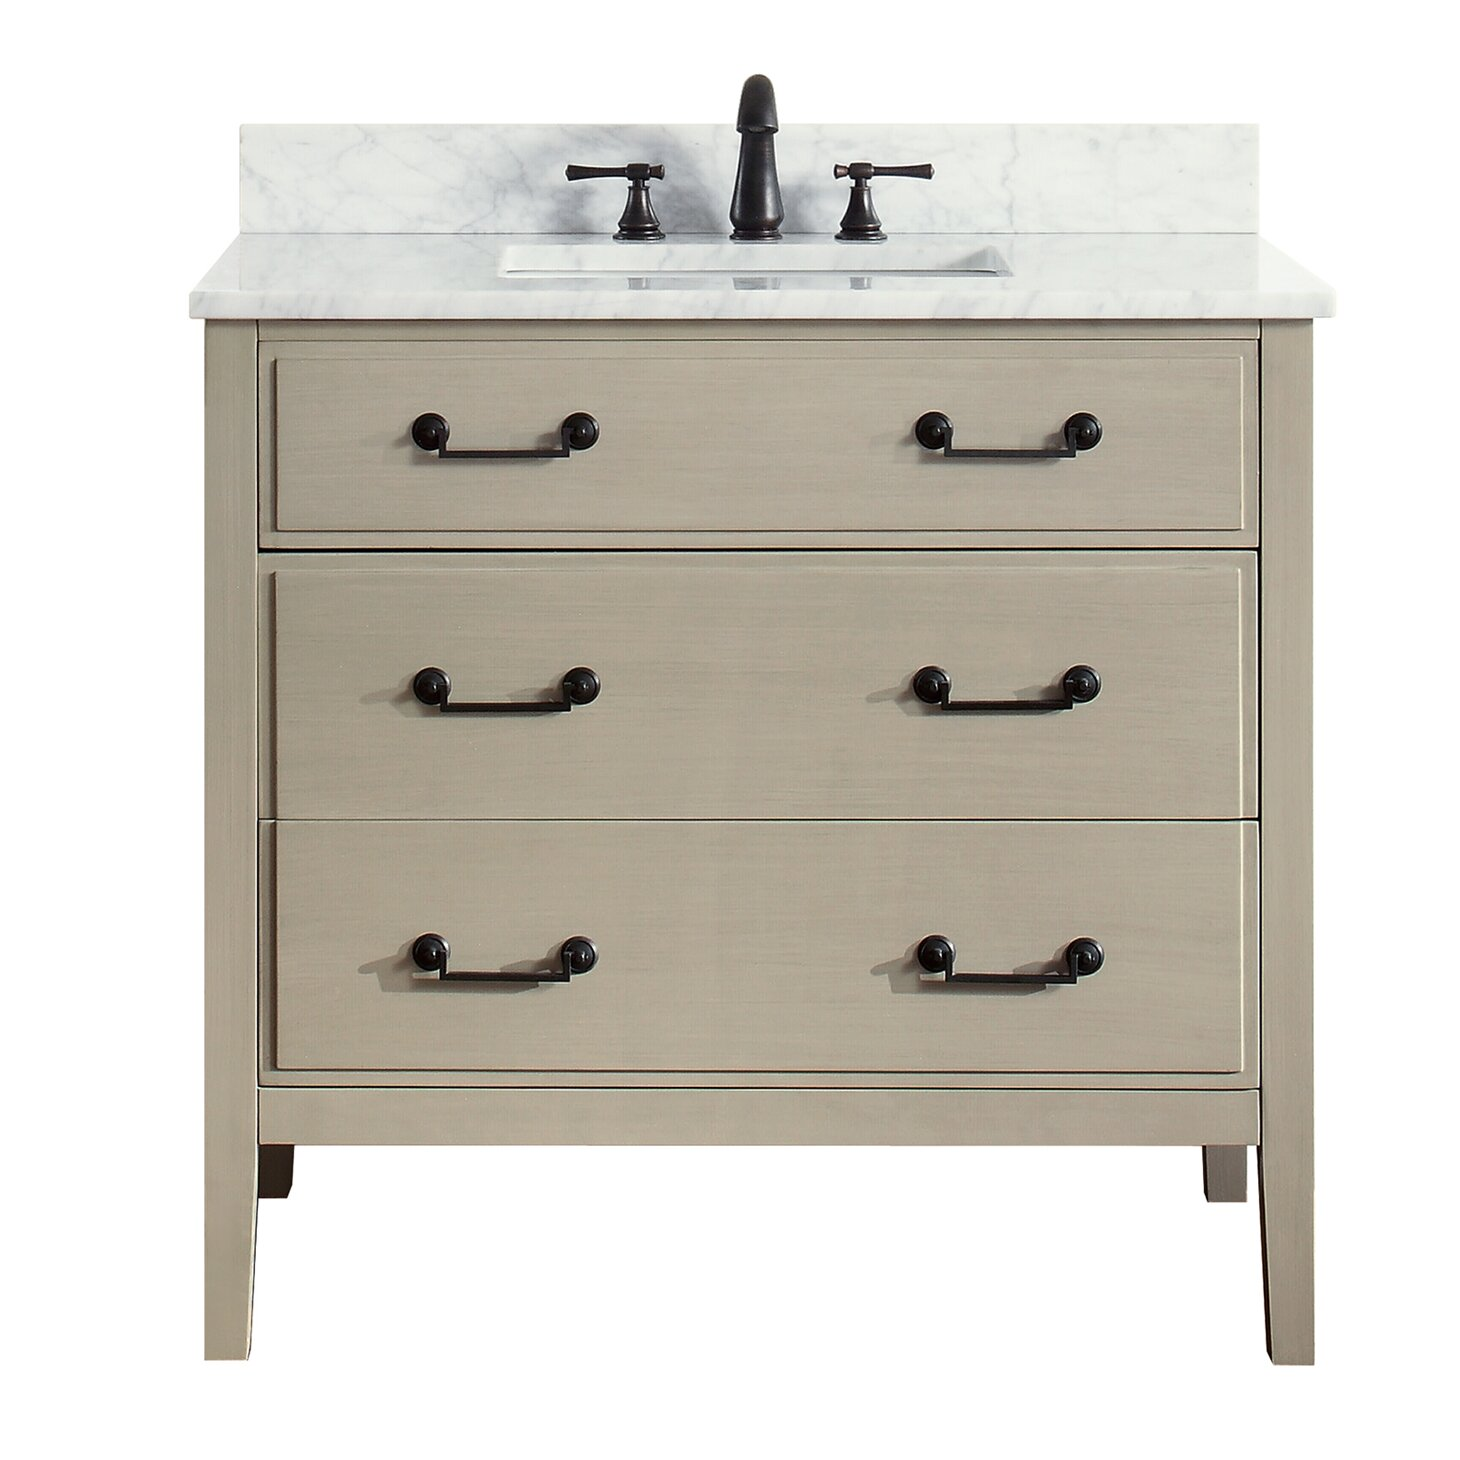 Avanity delano 37 single modern bathroom vanity set reviews wayfair - Kona modern bathroom vanity set ...